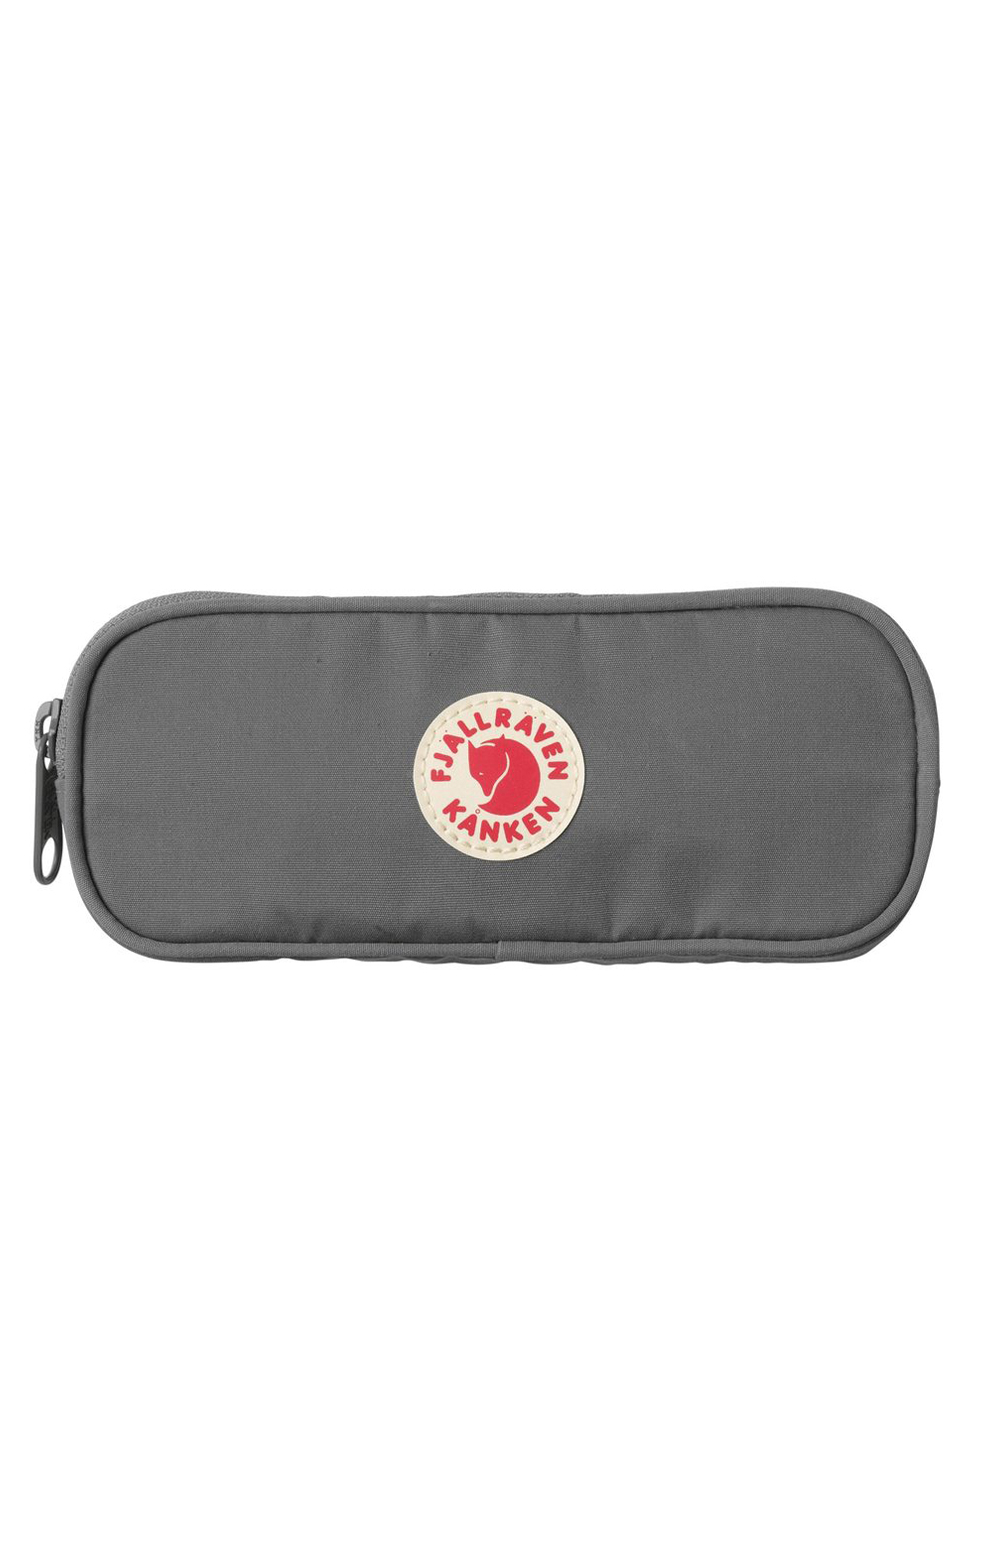 Kanken Pen Case - Super Grey